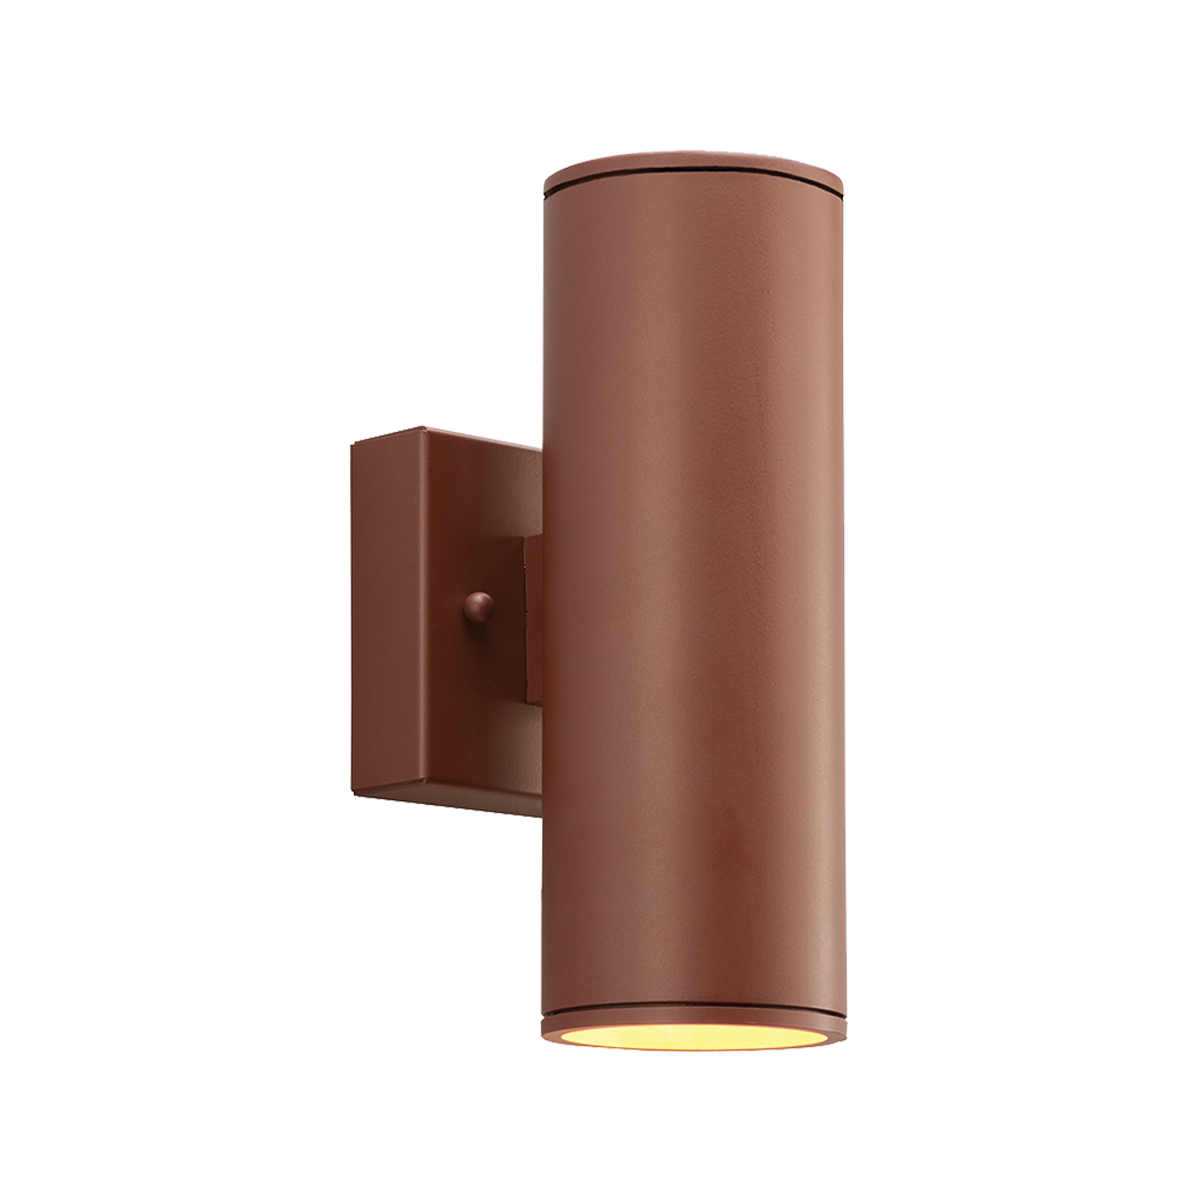 """2"""" Round LED Wall Mount Up - Downlight Cylinder, 2700K  -  90 CRI"""